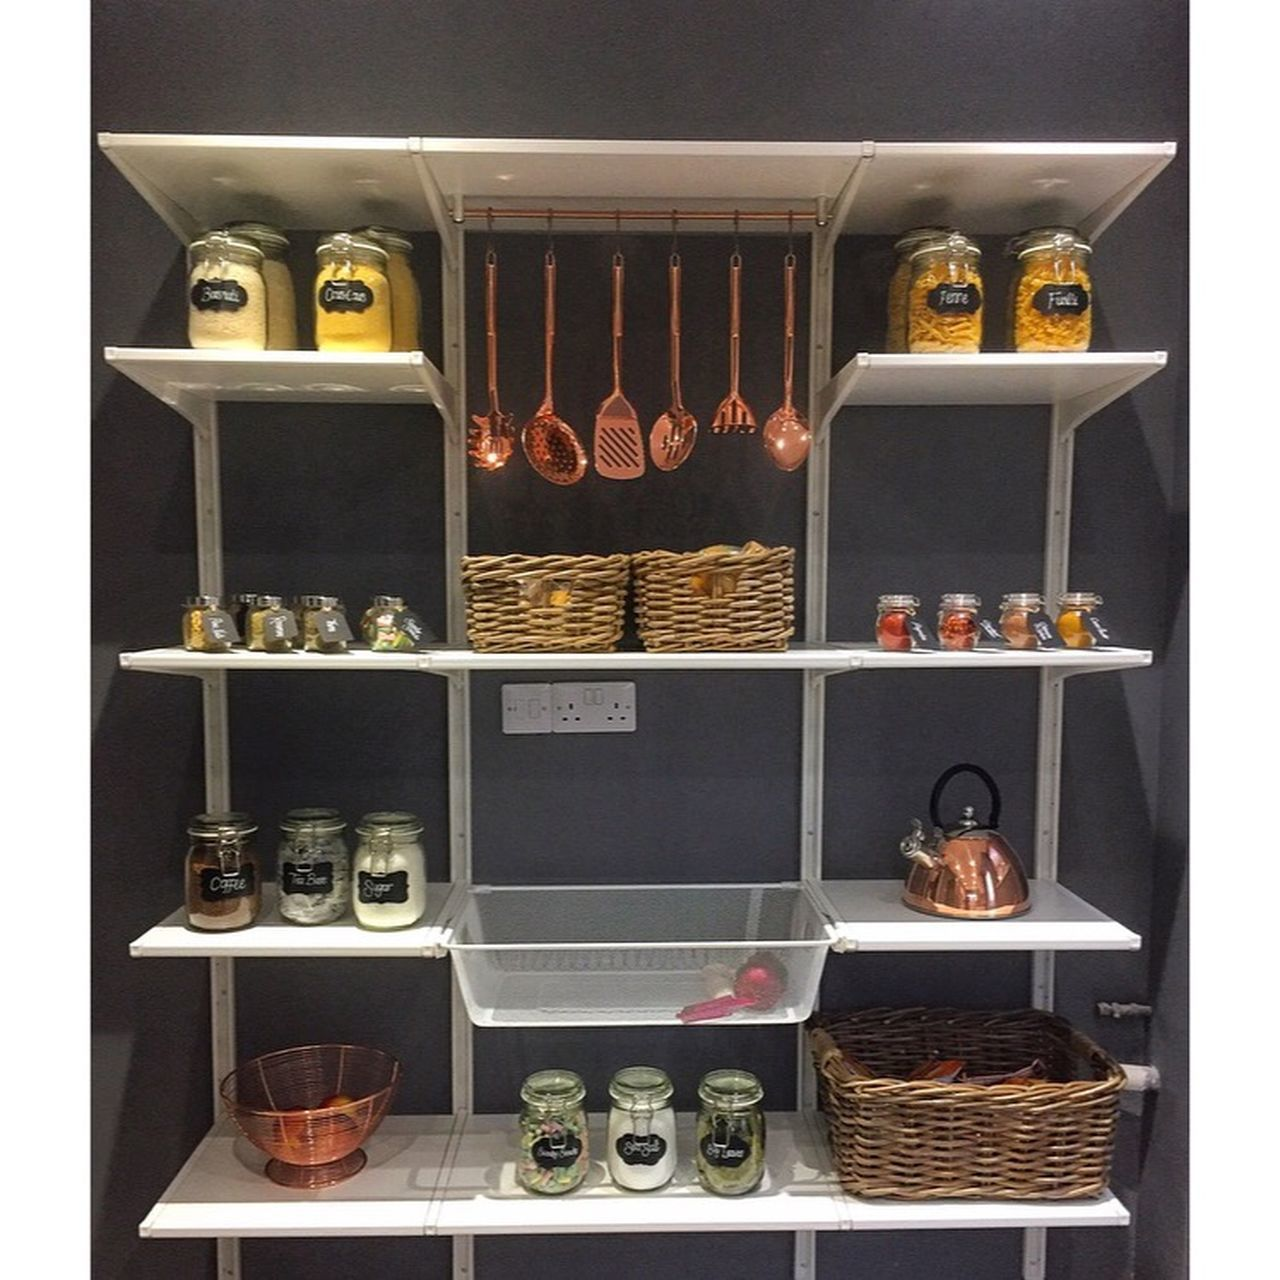 Basket Copper  Food Grey Indoors  Jar Jars  Kicthen Kitchen Kitchen Life Kitchen Utensil Kitchen Utensils Kitchenware Lables Lables And Writings No People Organisation Pantry Pantry Shelves Pantry View Raw Food